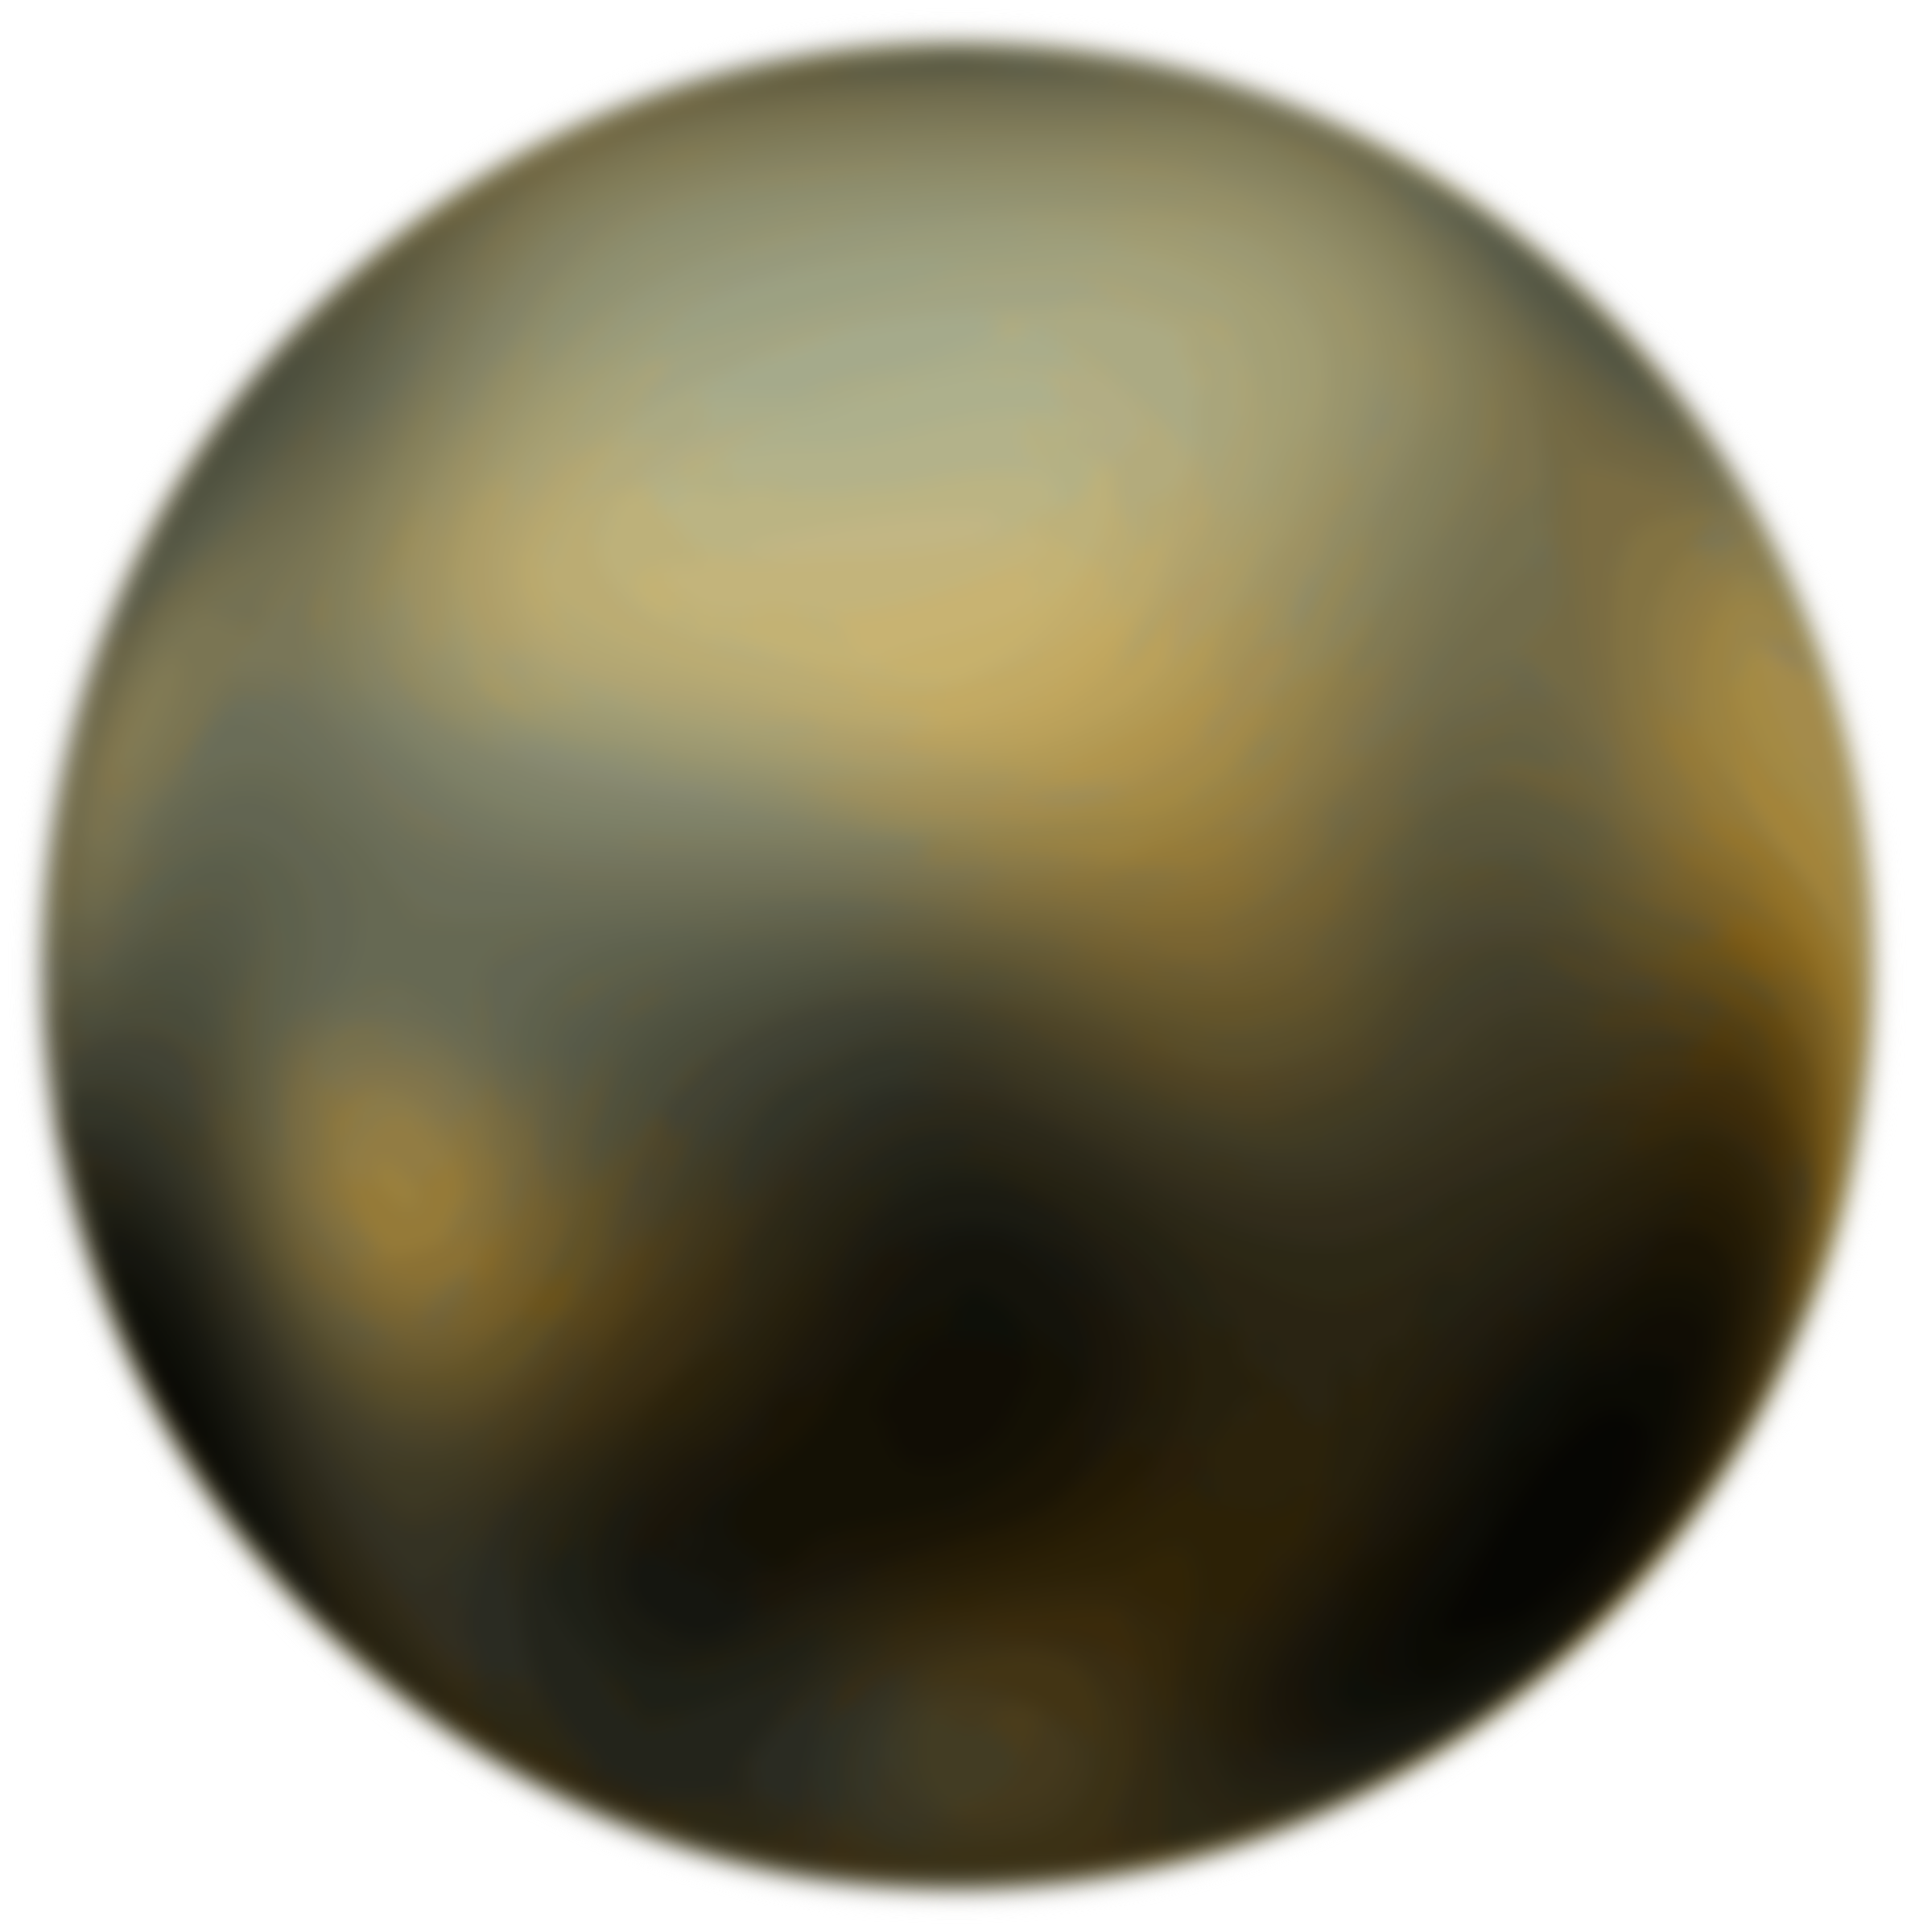 Planets clipart face. Pluto degree from hubble